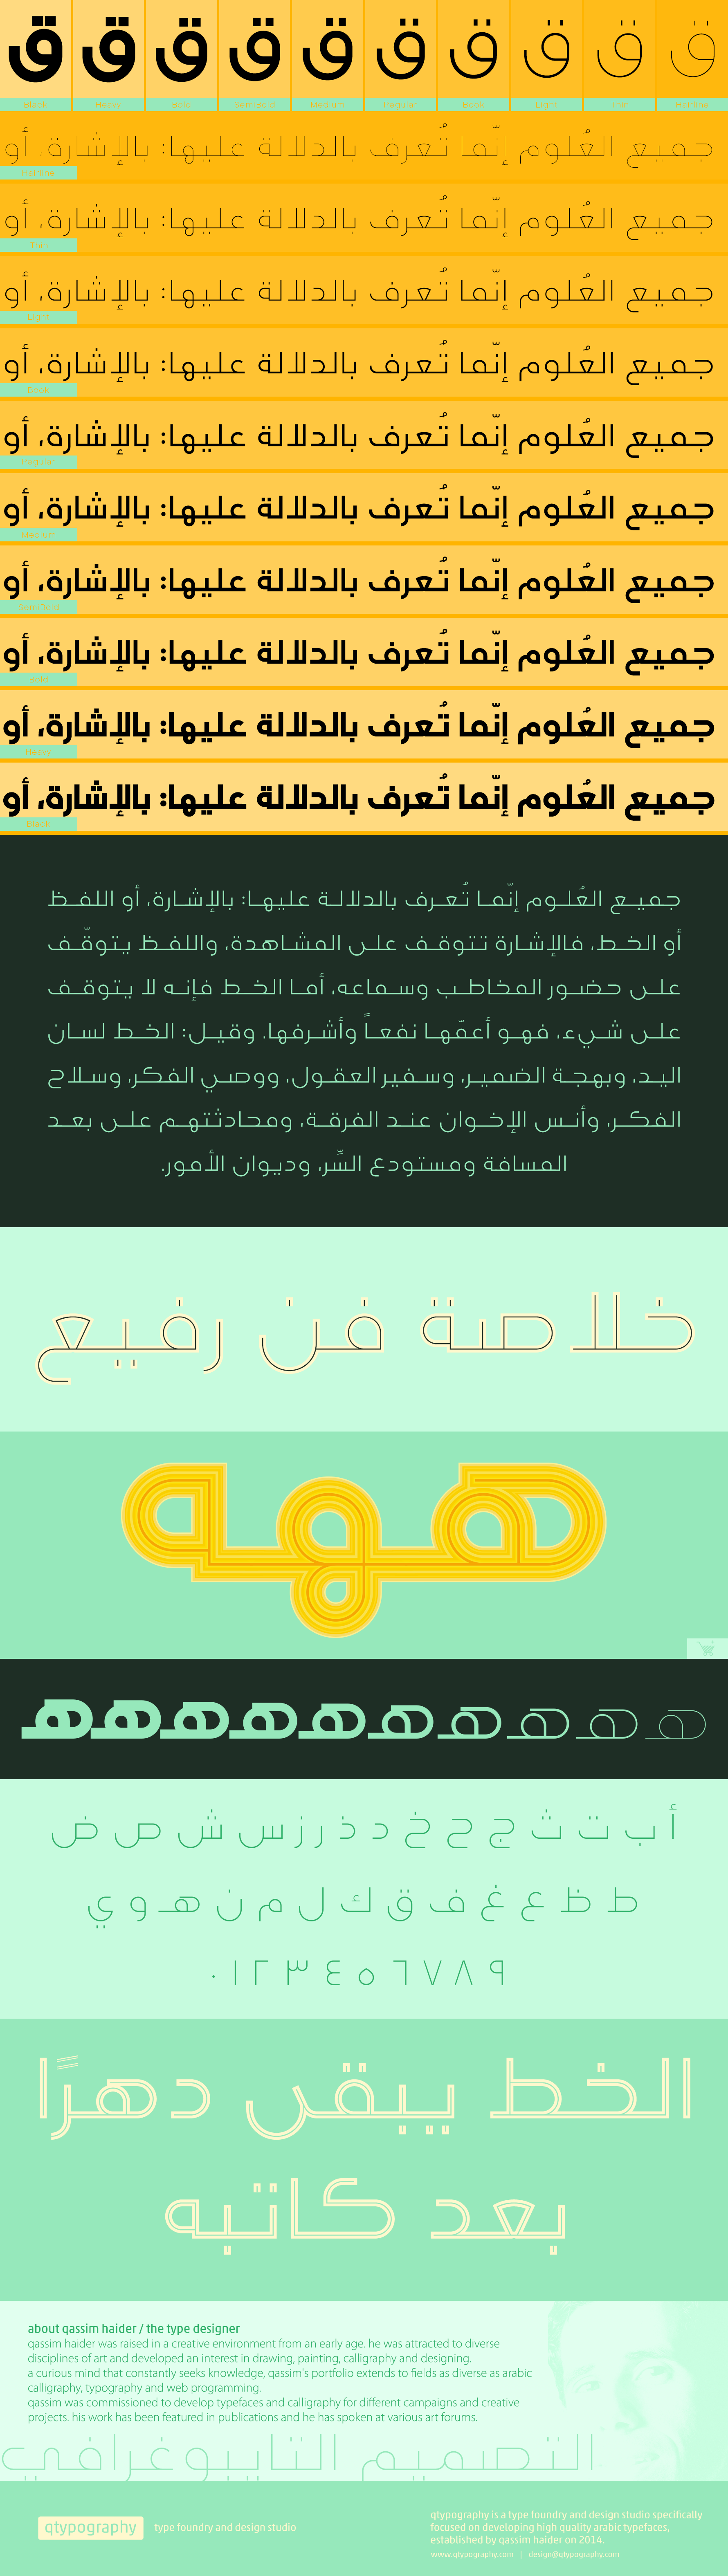 qtypography | type foundry and design studio.